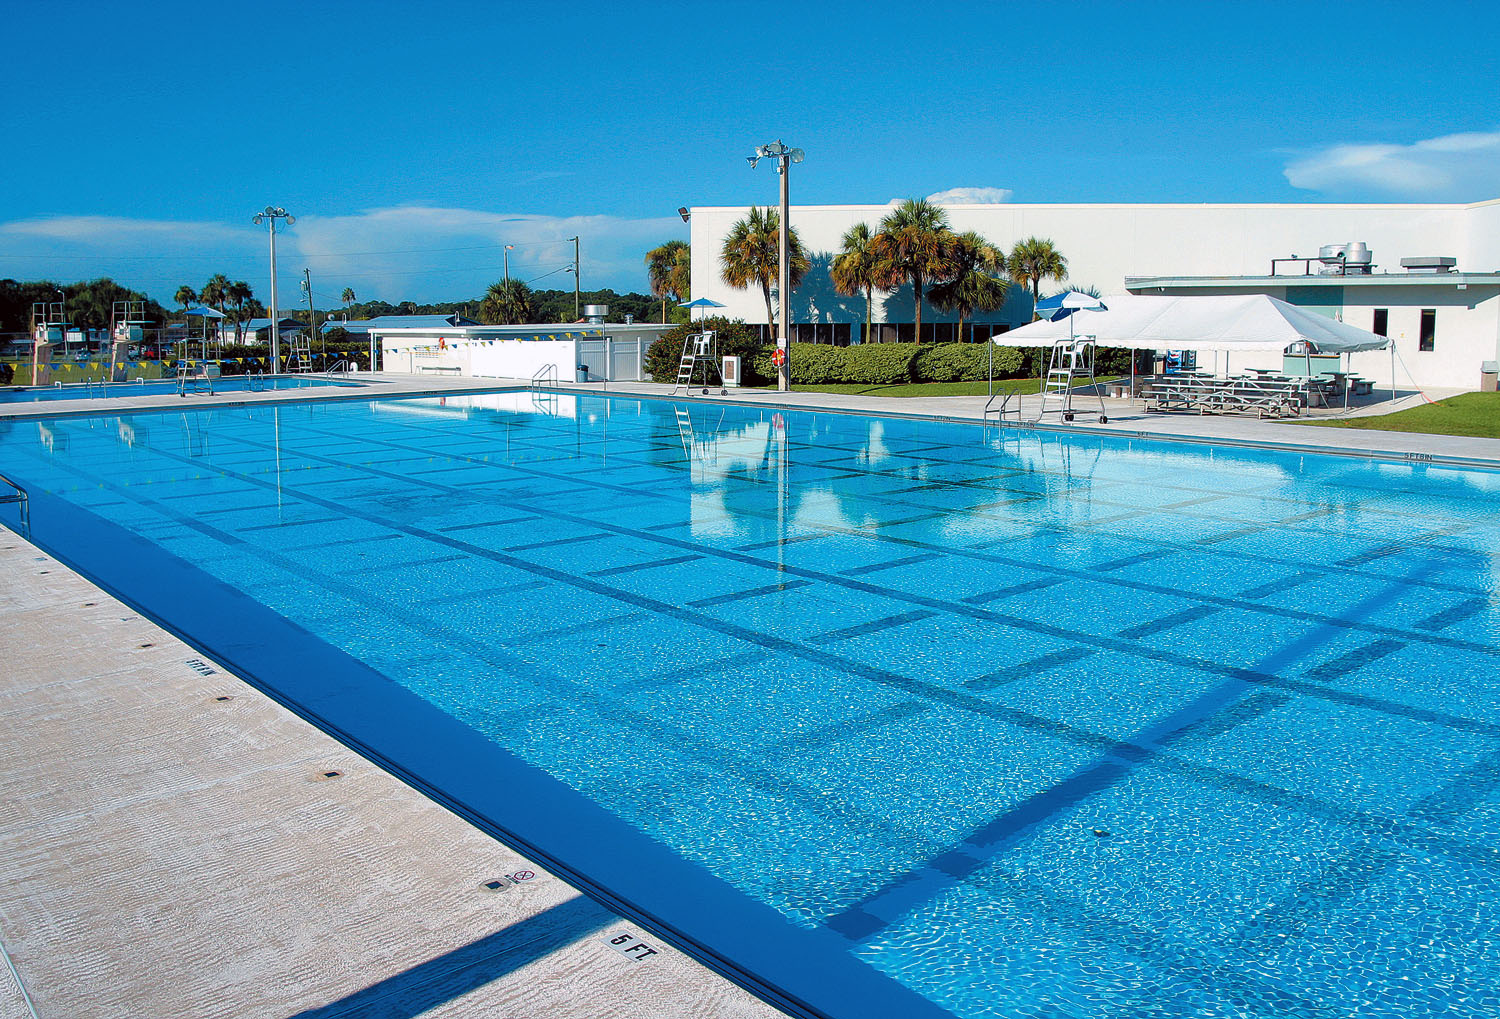 The Rowdy Gaines Aquatic Center in Winter Haven